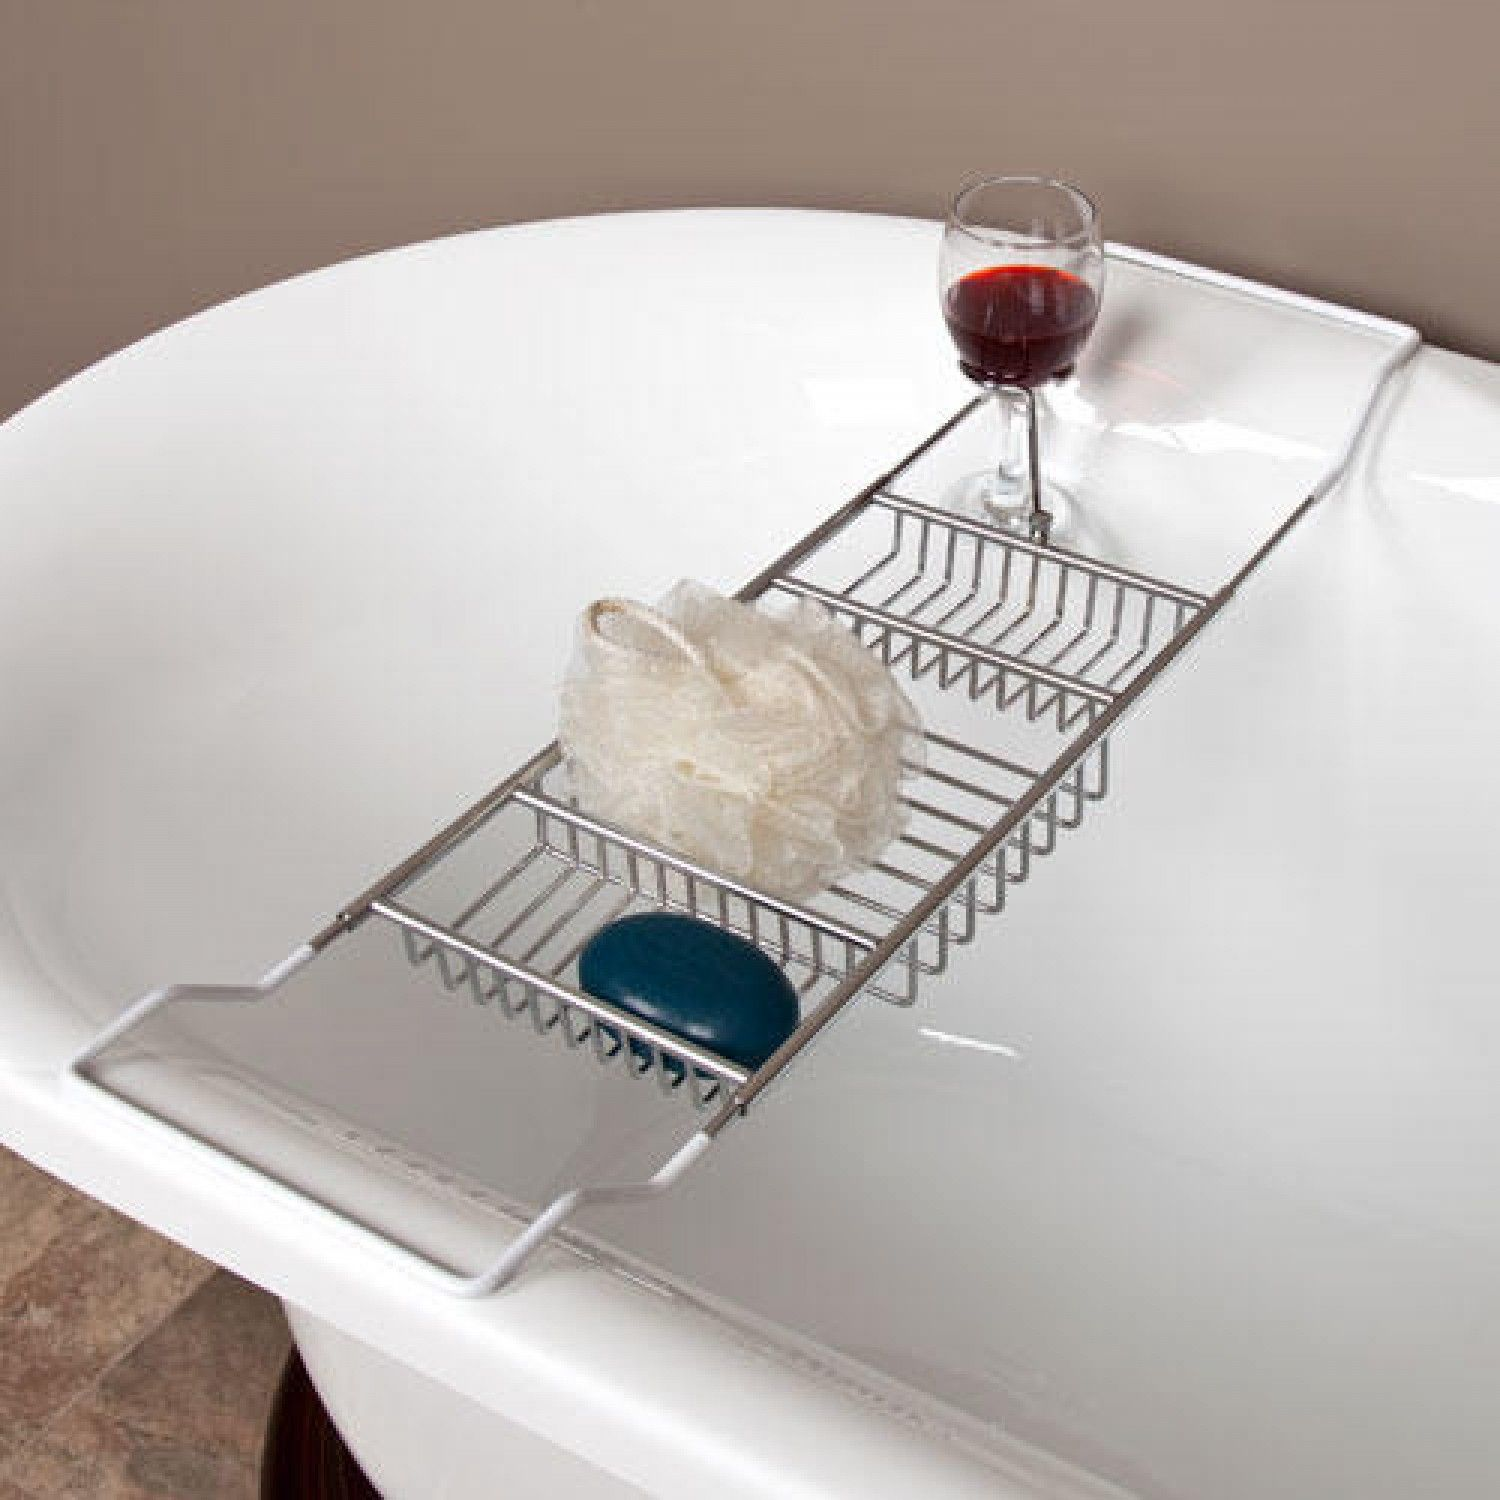 Stillwell Tub Caddy with Wine Glass Holder - Clawfoot Tub ...